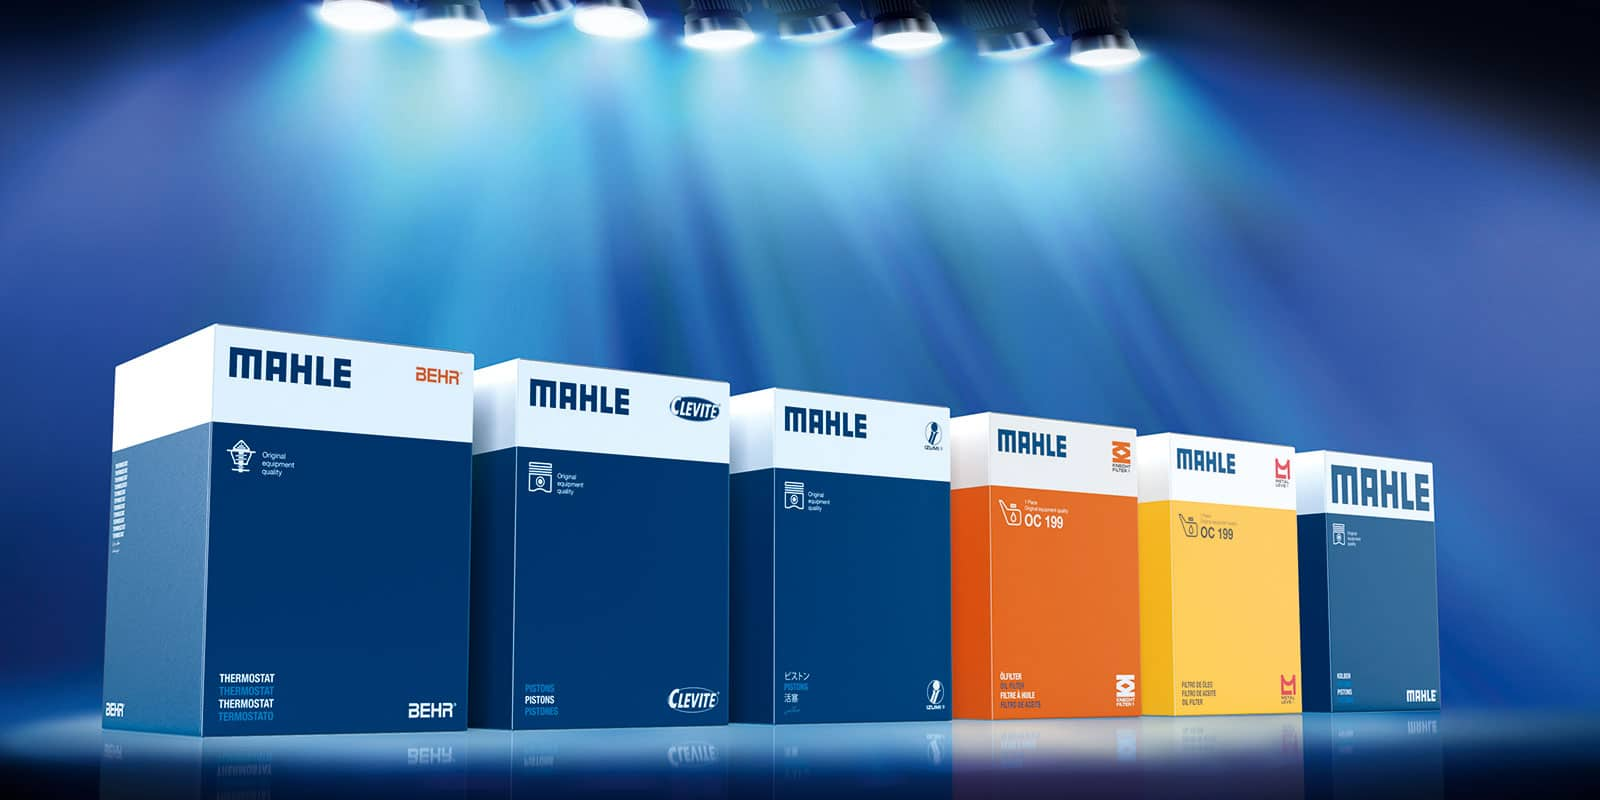 Mahle Verpackungsdesign